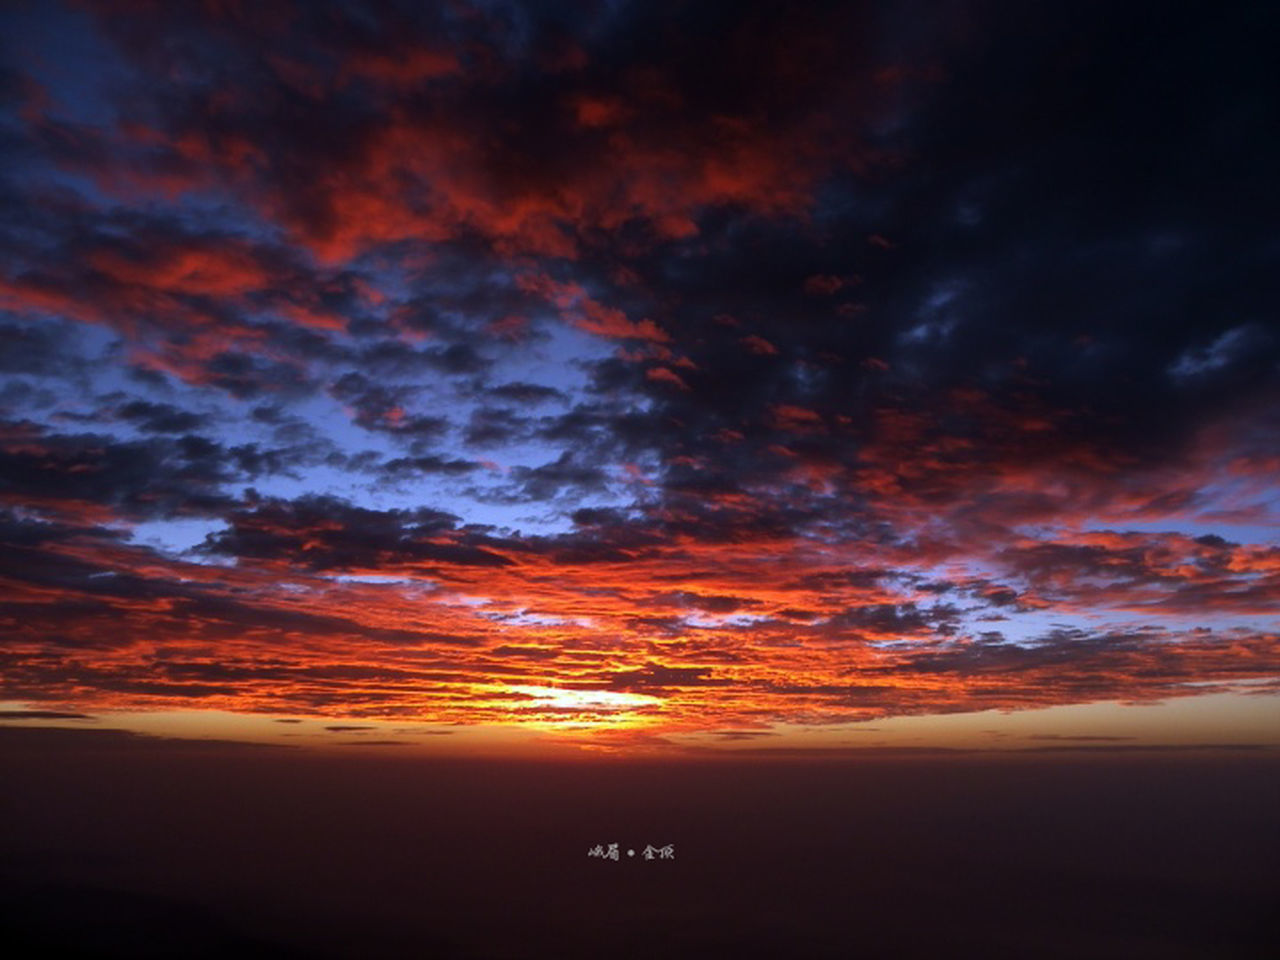 峨眉山 Emei Mountain Emei Sichuan Province Sichuan Emeishan Moutain Sunrise Color